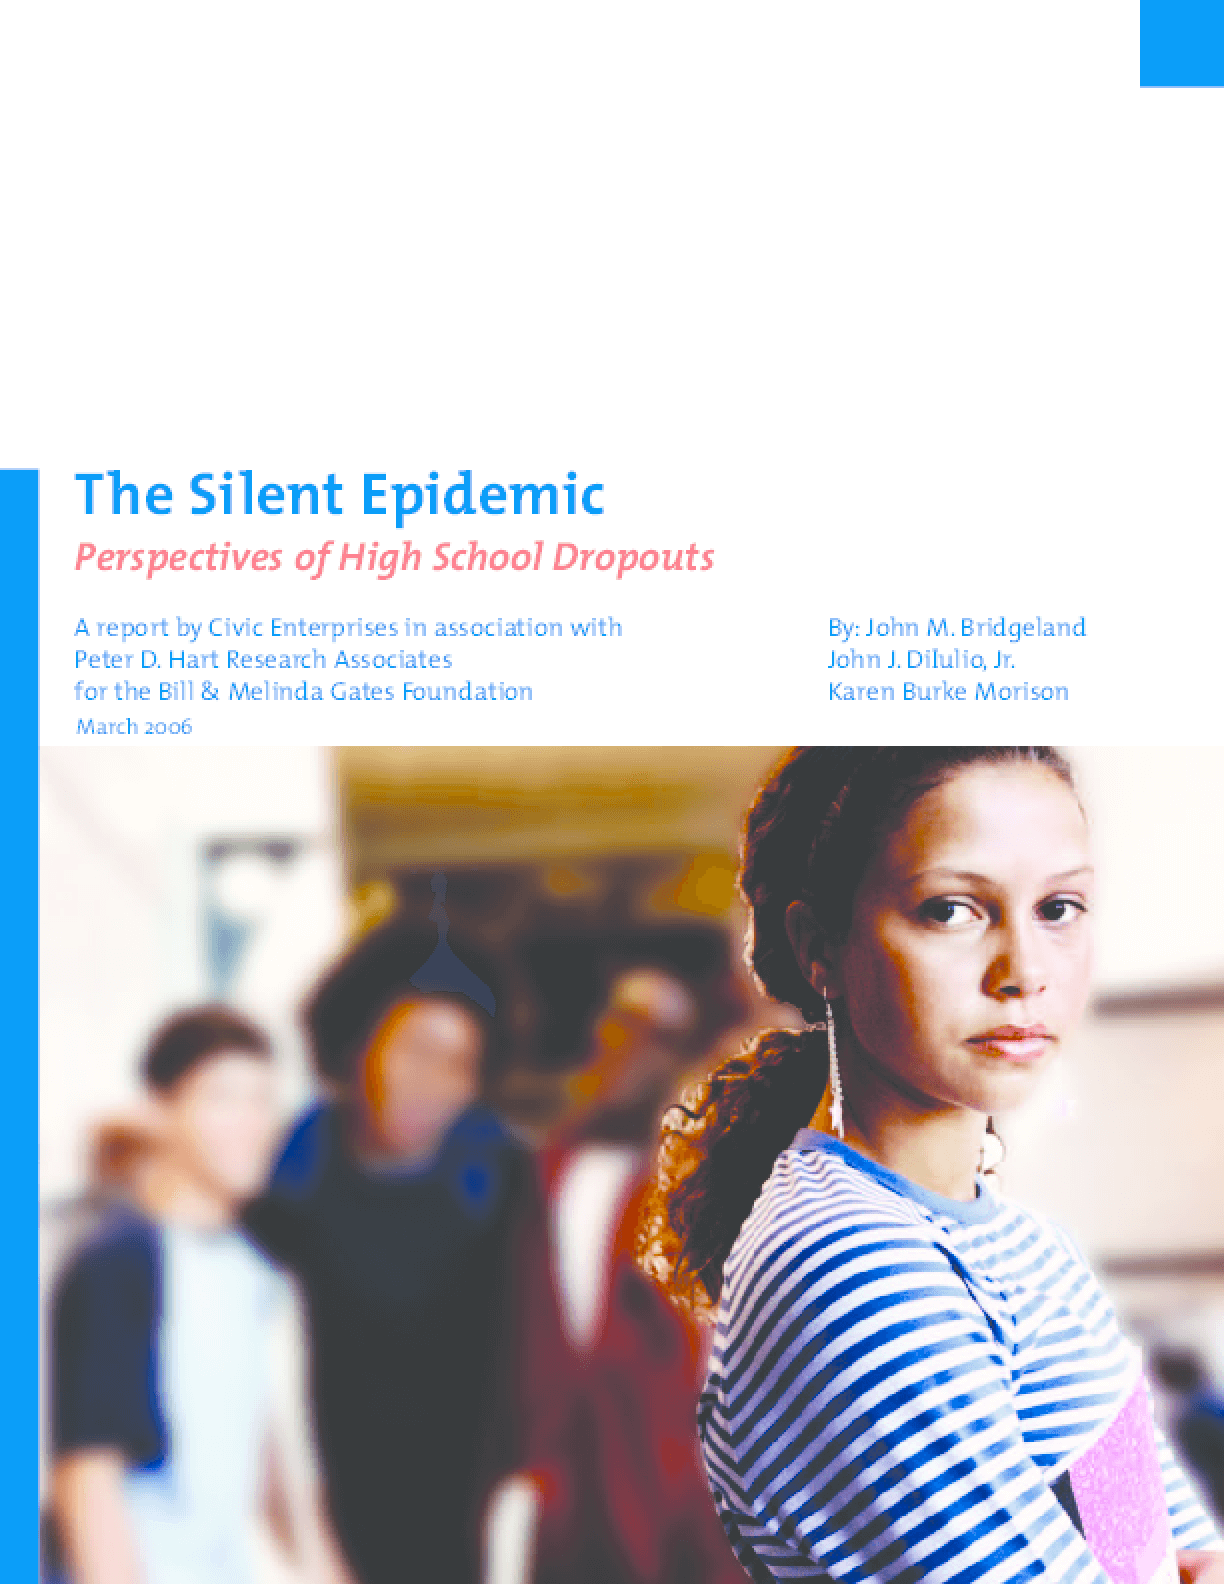 The Silent Epidemic: Perspectives of High School Dropouts